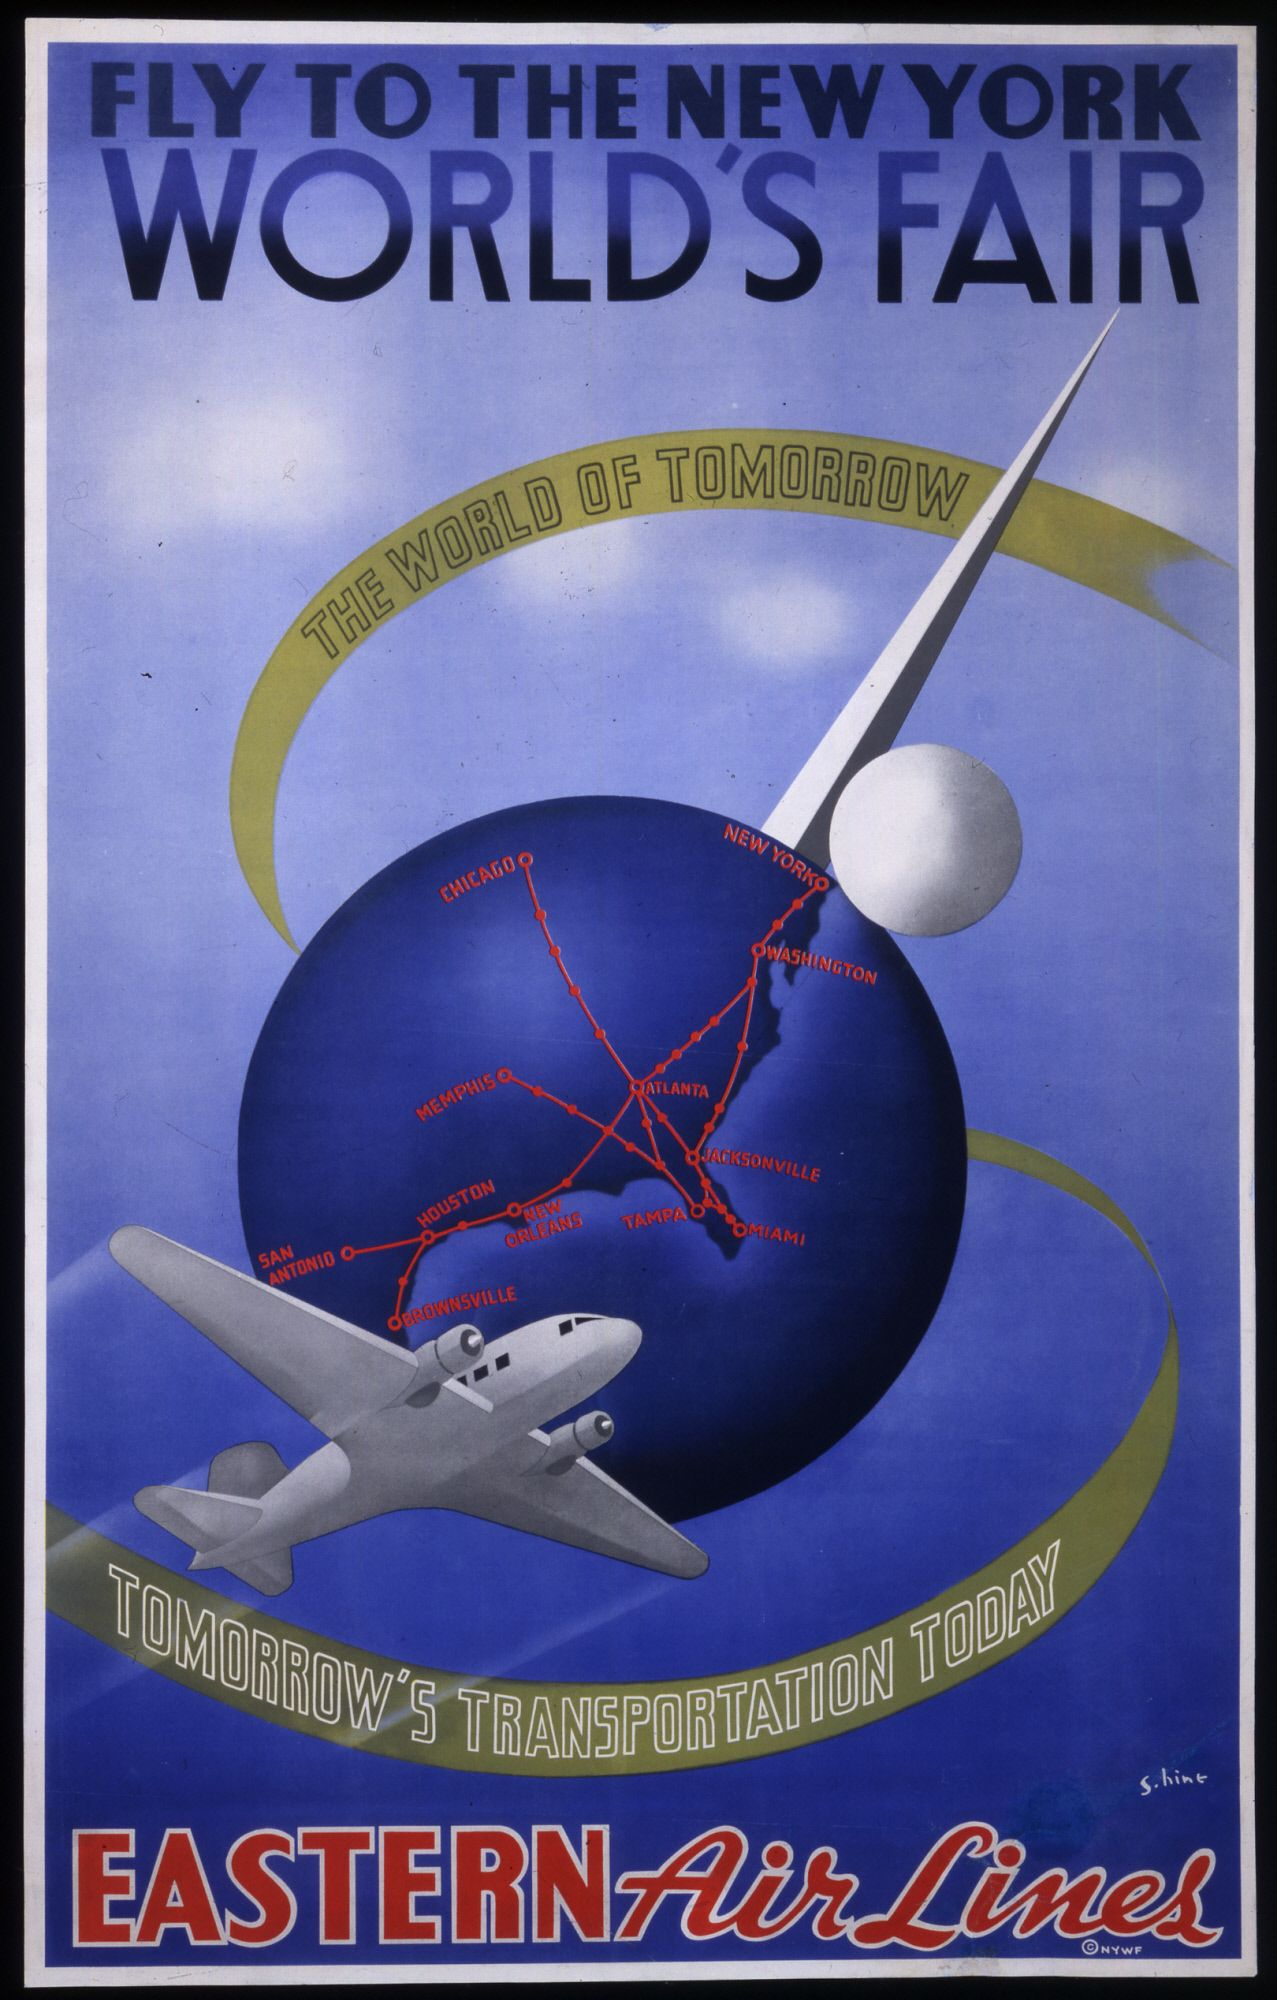 Eastern Airlines Poster for the 1939 New York World's Fair ...